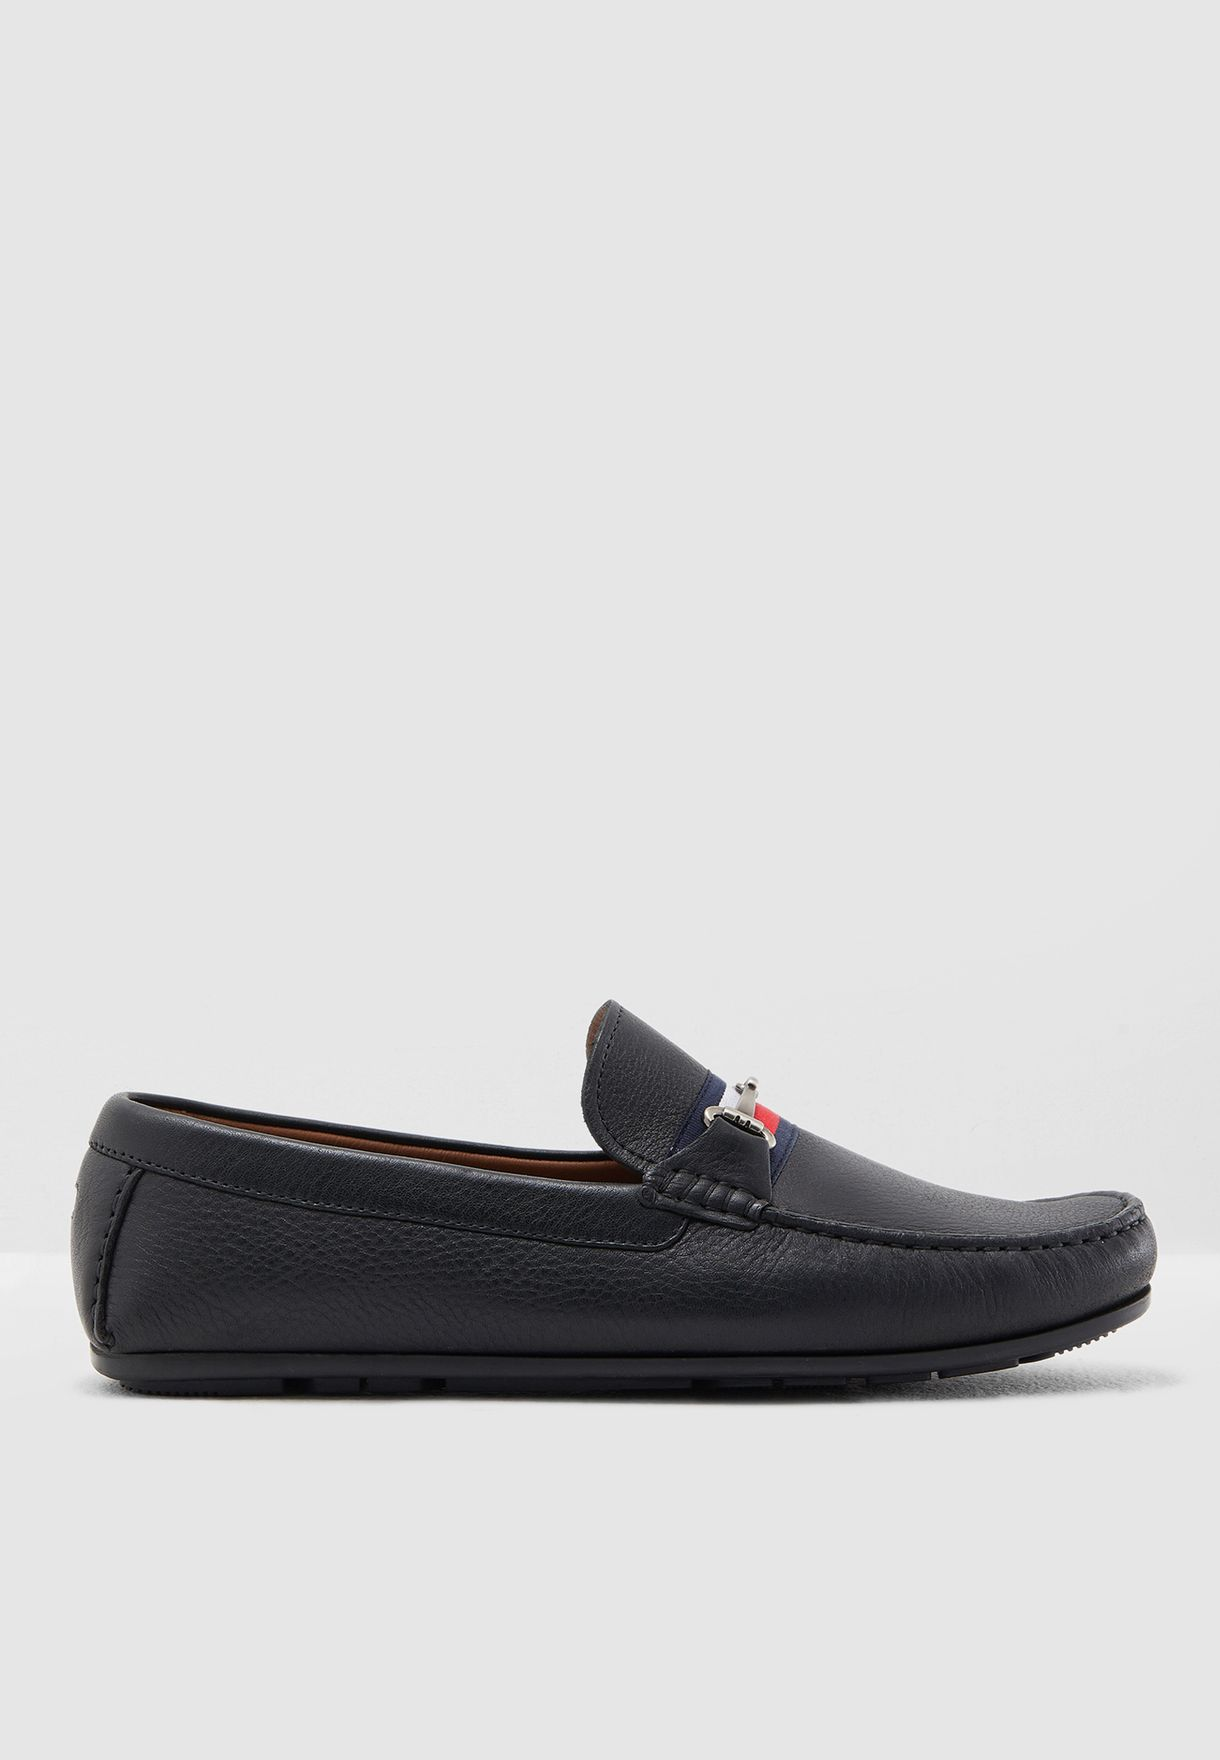 b1189b737fcb61 Shop Tommy Hilfiger black Fringe Driver Loafers FM0FM02007990 for ...